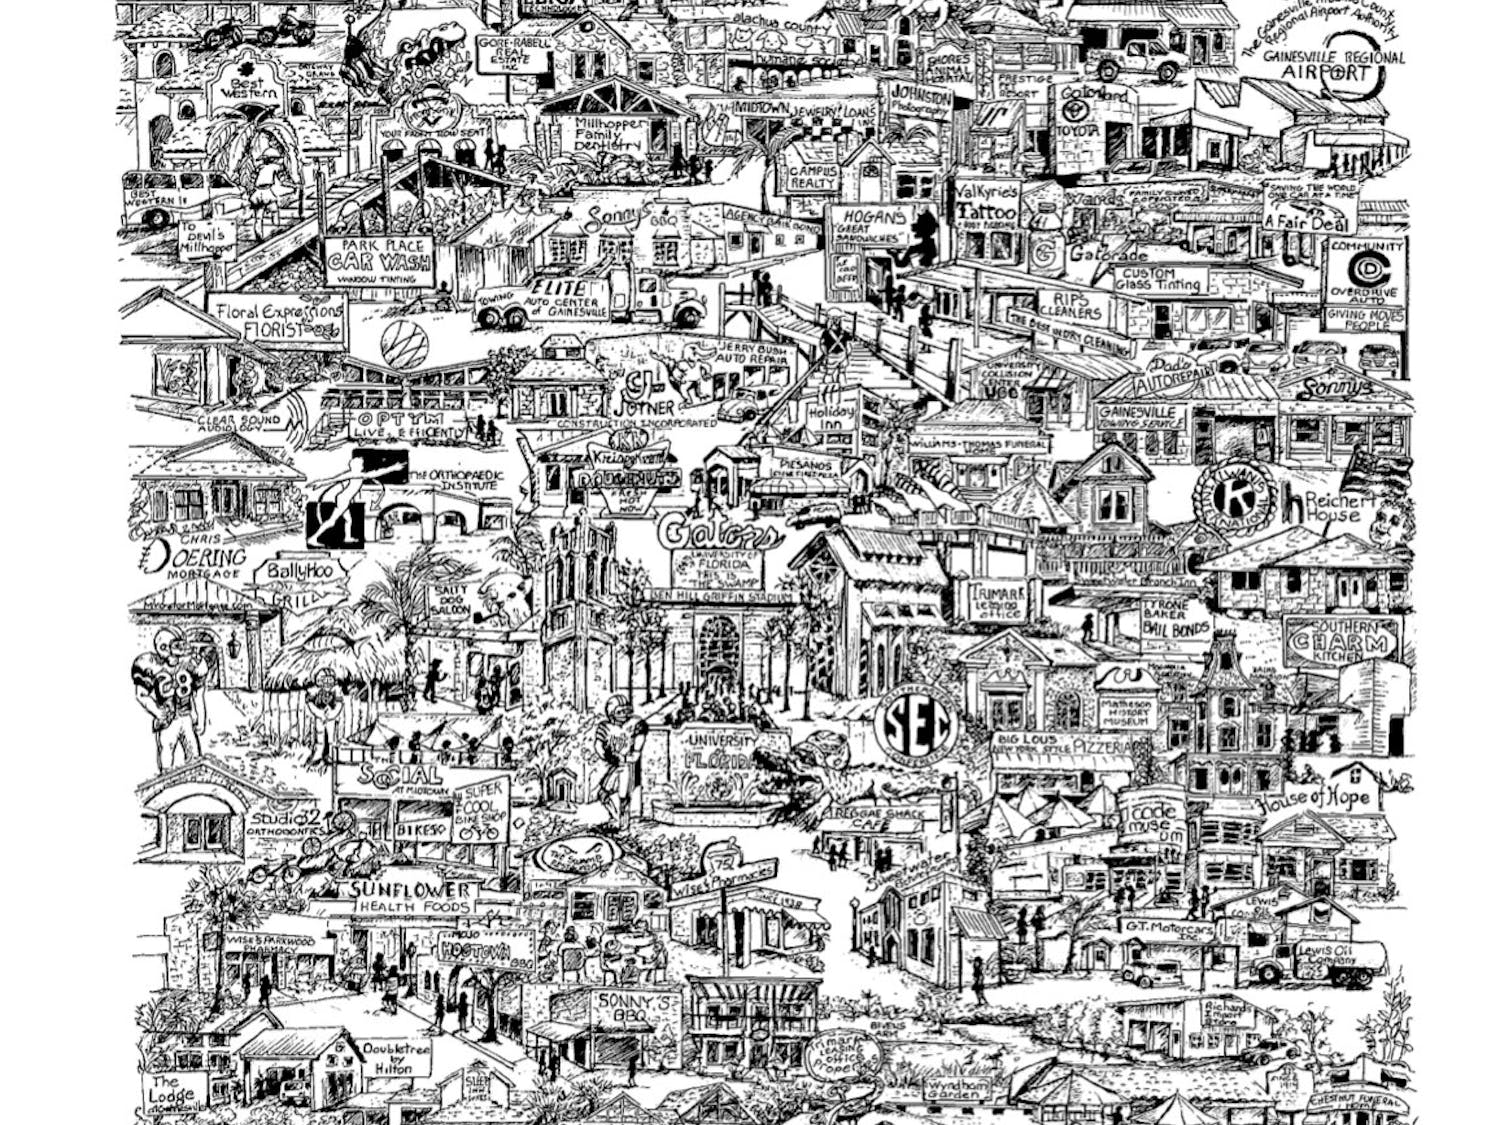 Local organizations paired with CityScapes Artwork to create a hand-drawn print that depicts well-known businesses, restaurants and landmarks in the area. The artwork will be sold to benefit nonprofit organizations in Gainesville.